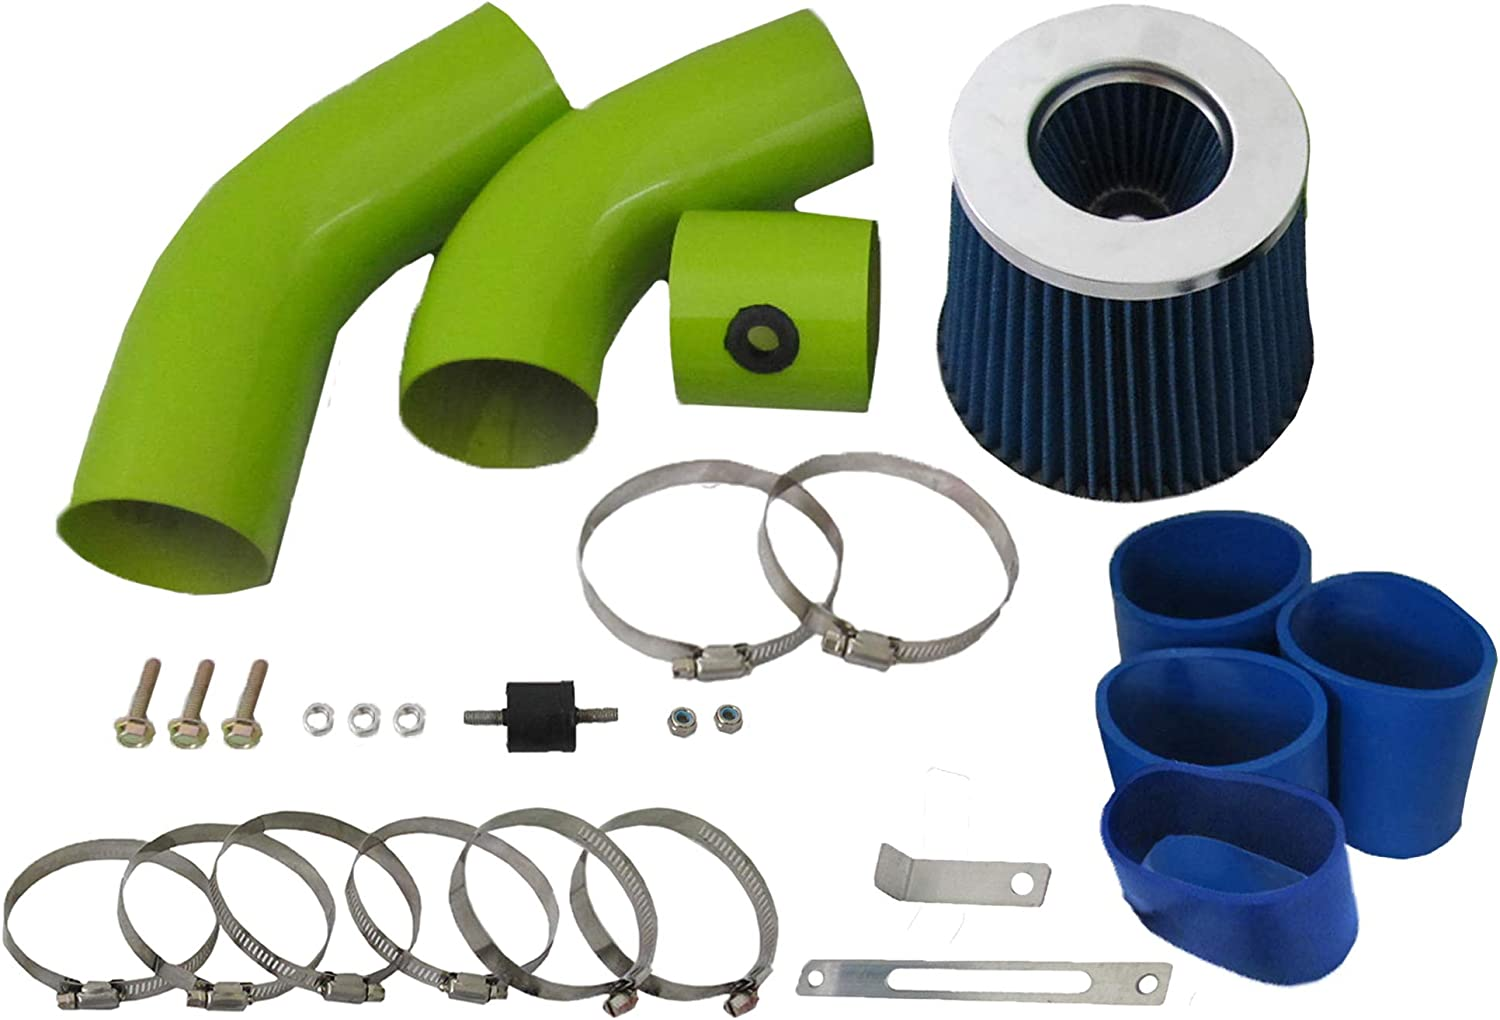 High Performance El Paso Mall Parts Green Pipe Cold Kit Air Blue Fil Max 68% OFF Intake